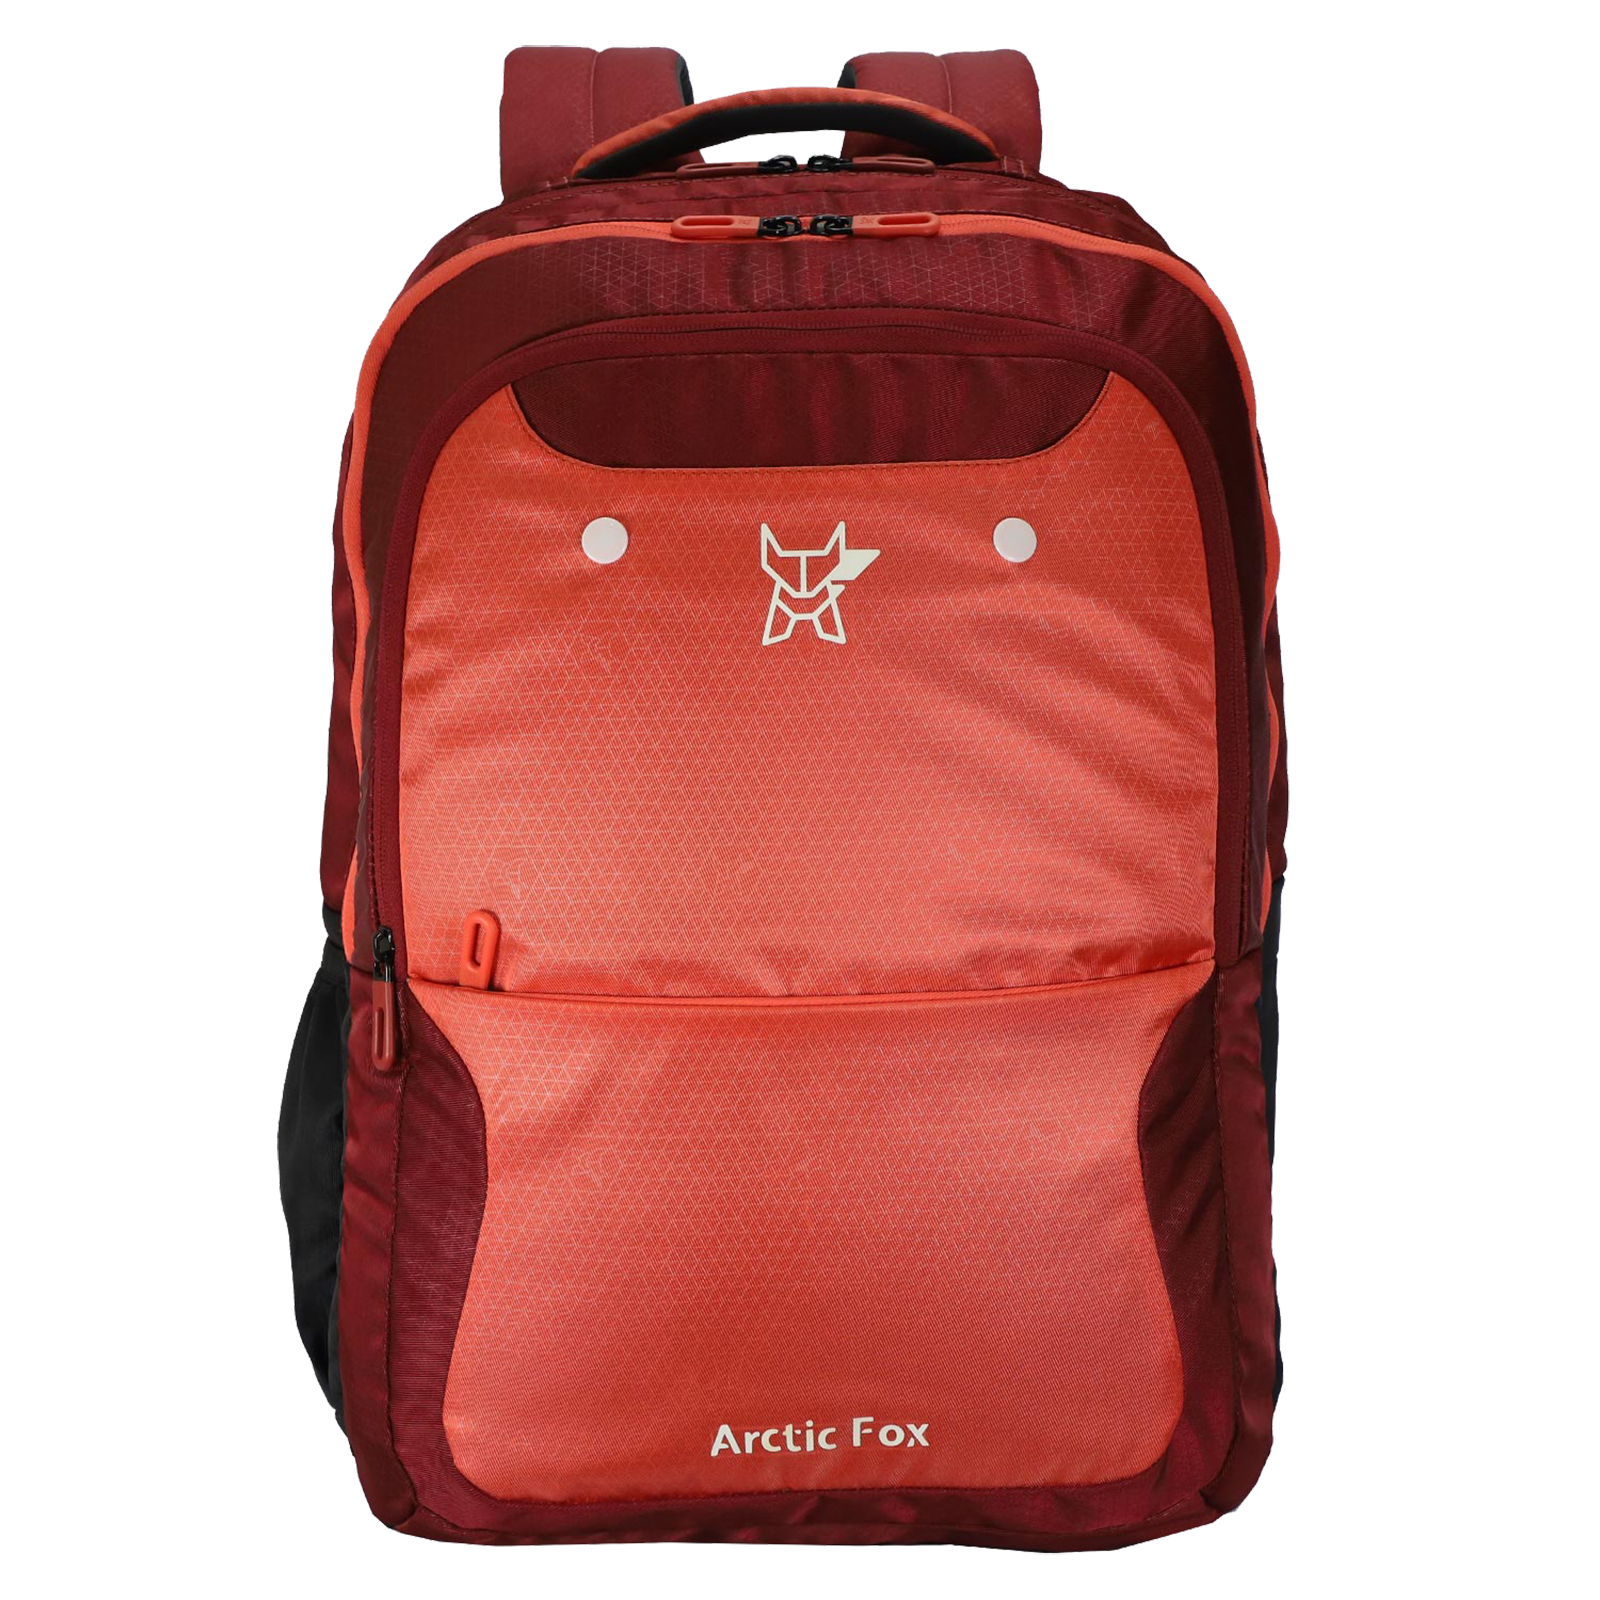 Arctic Fox Timber Hot 40 Litres Twill Polyester Backpack(Drawstring Rain Cover, FJUBPKHCRON026040, Coral)_1